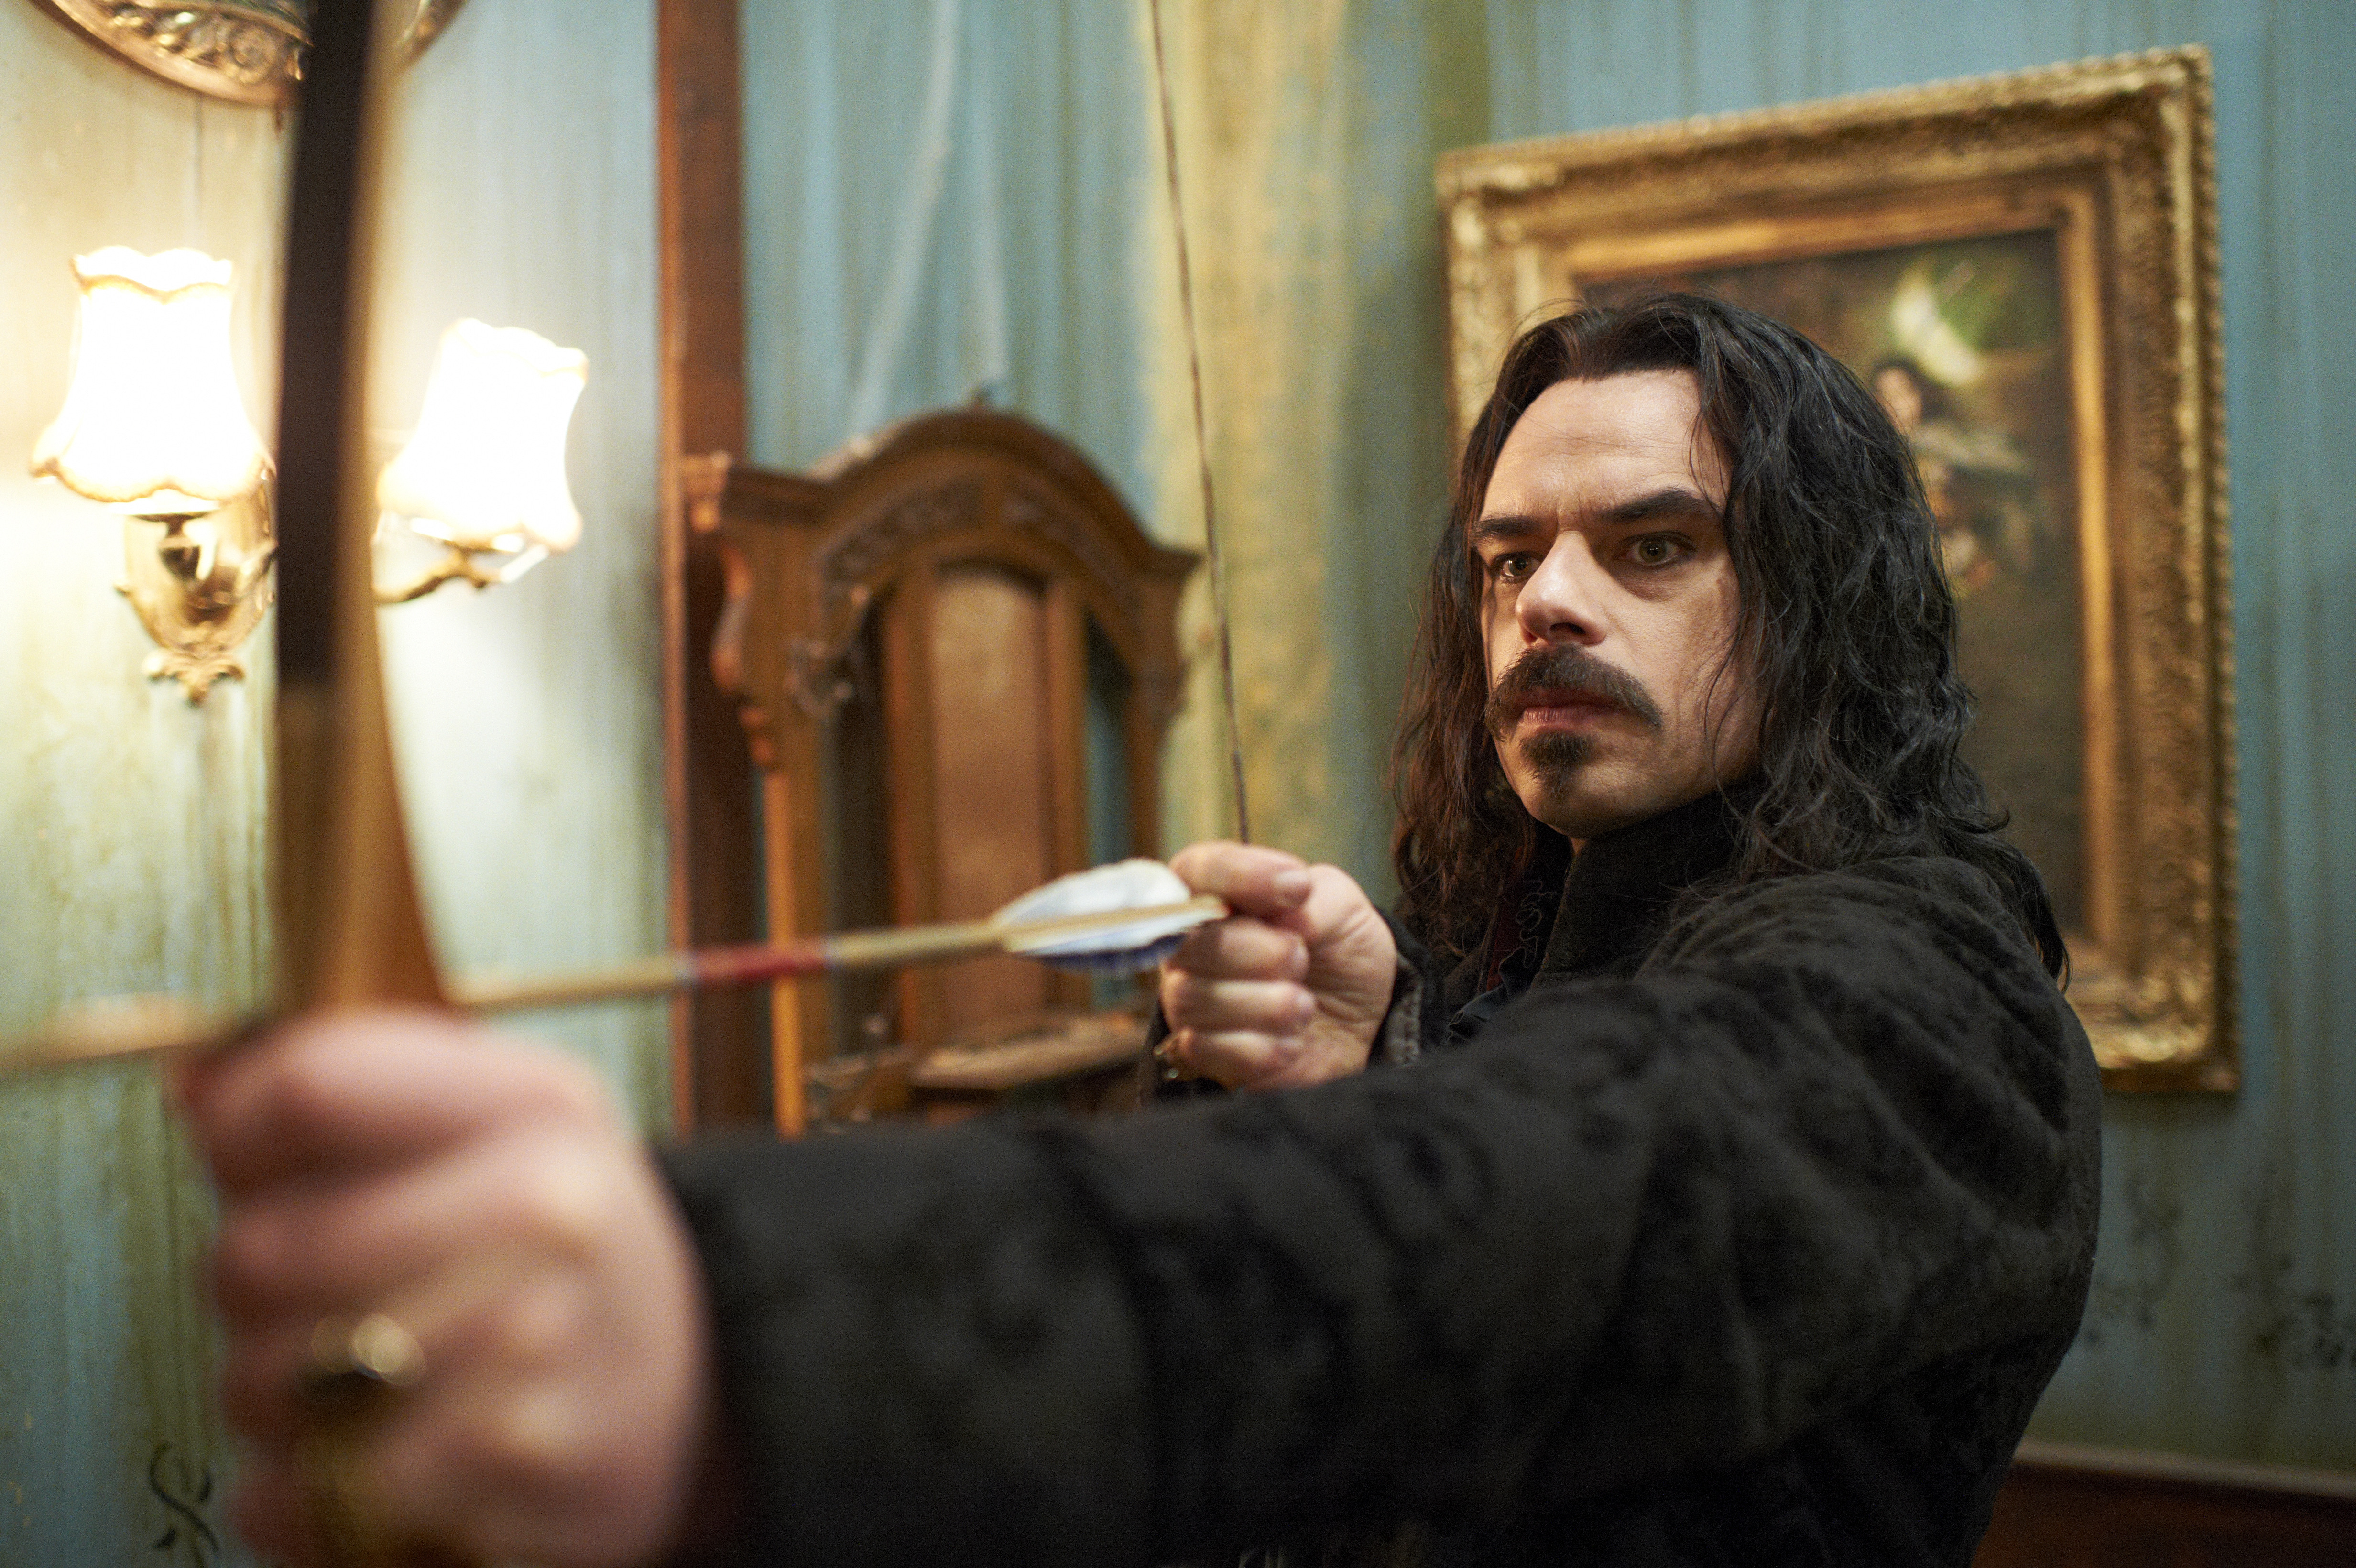 Jemaine Clement in What We Do in the Shadows (2014)